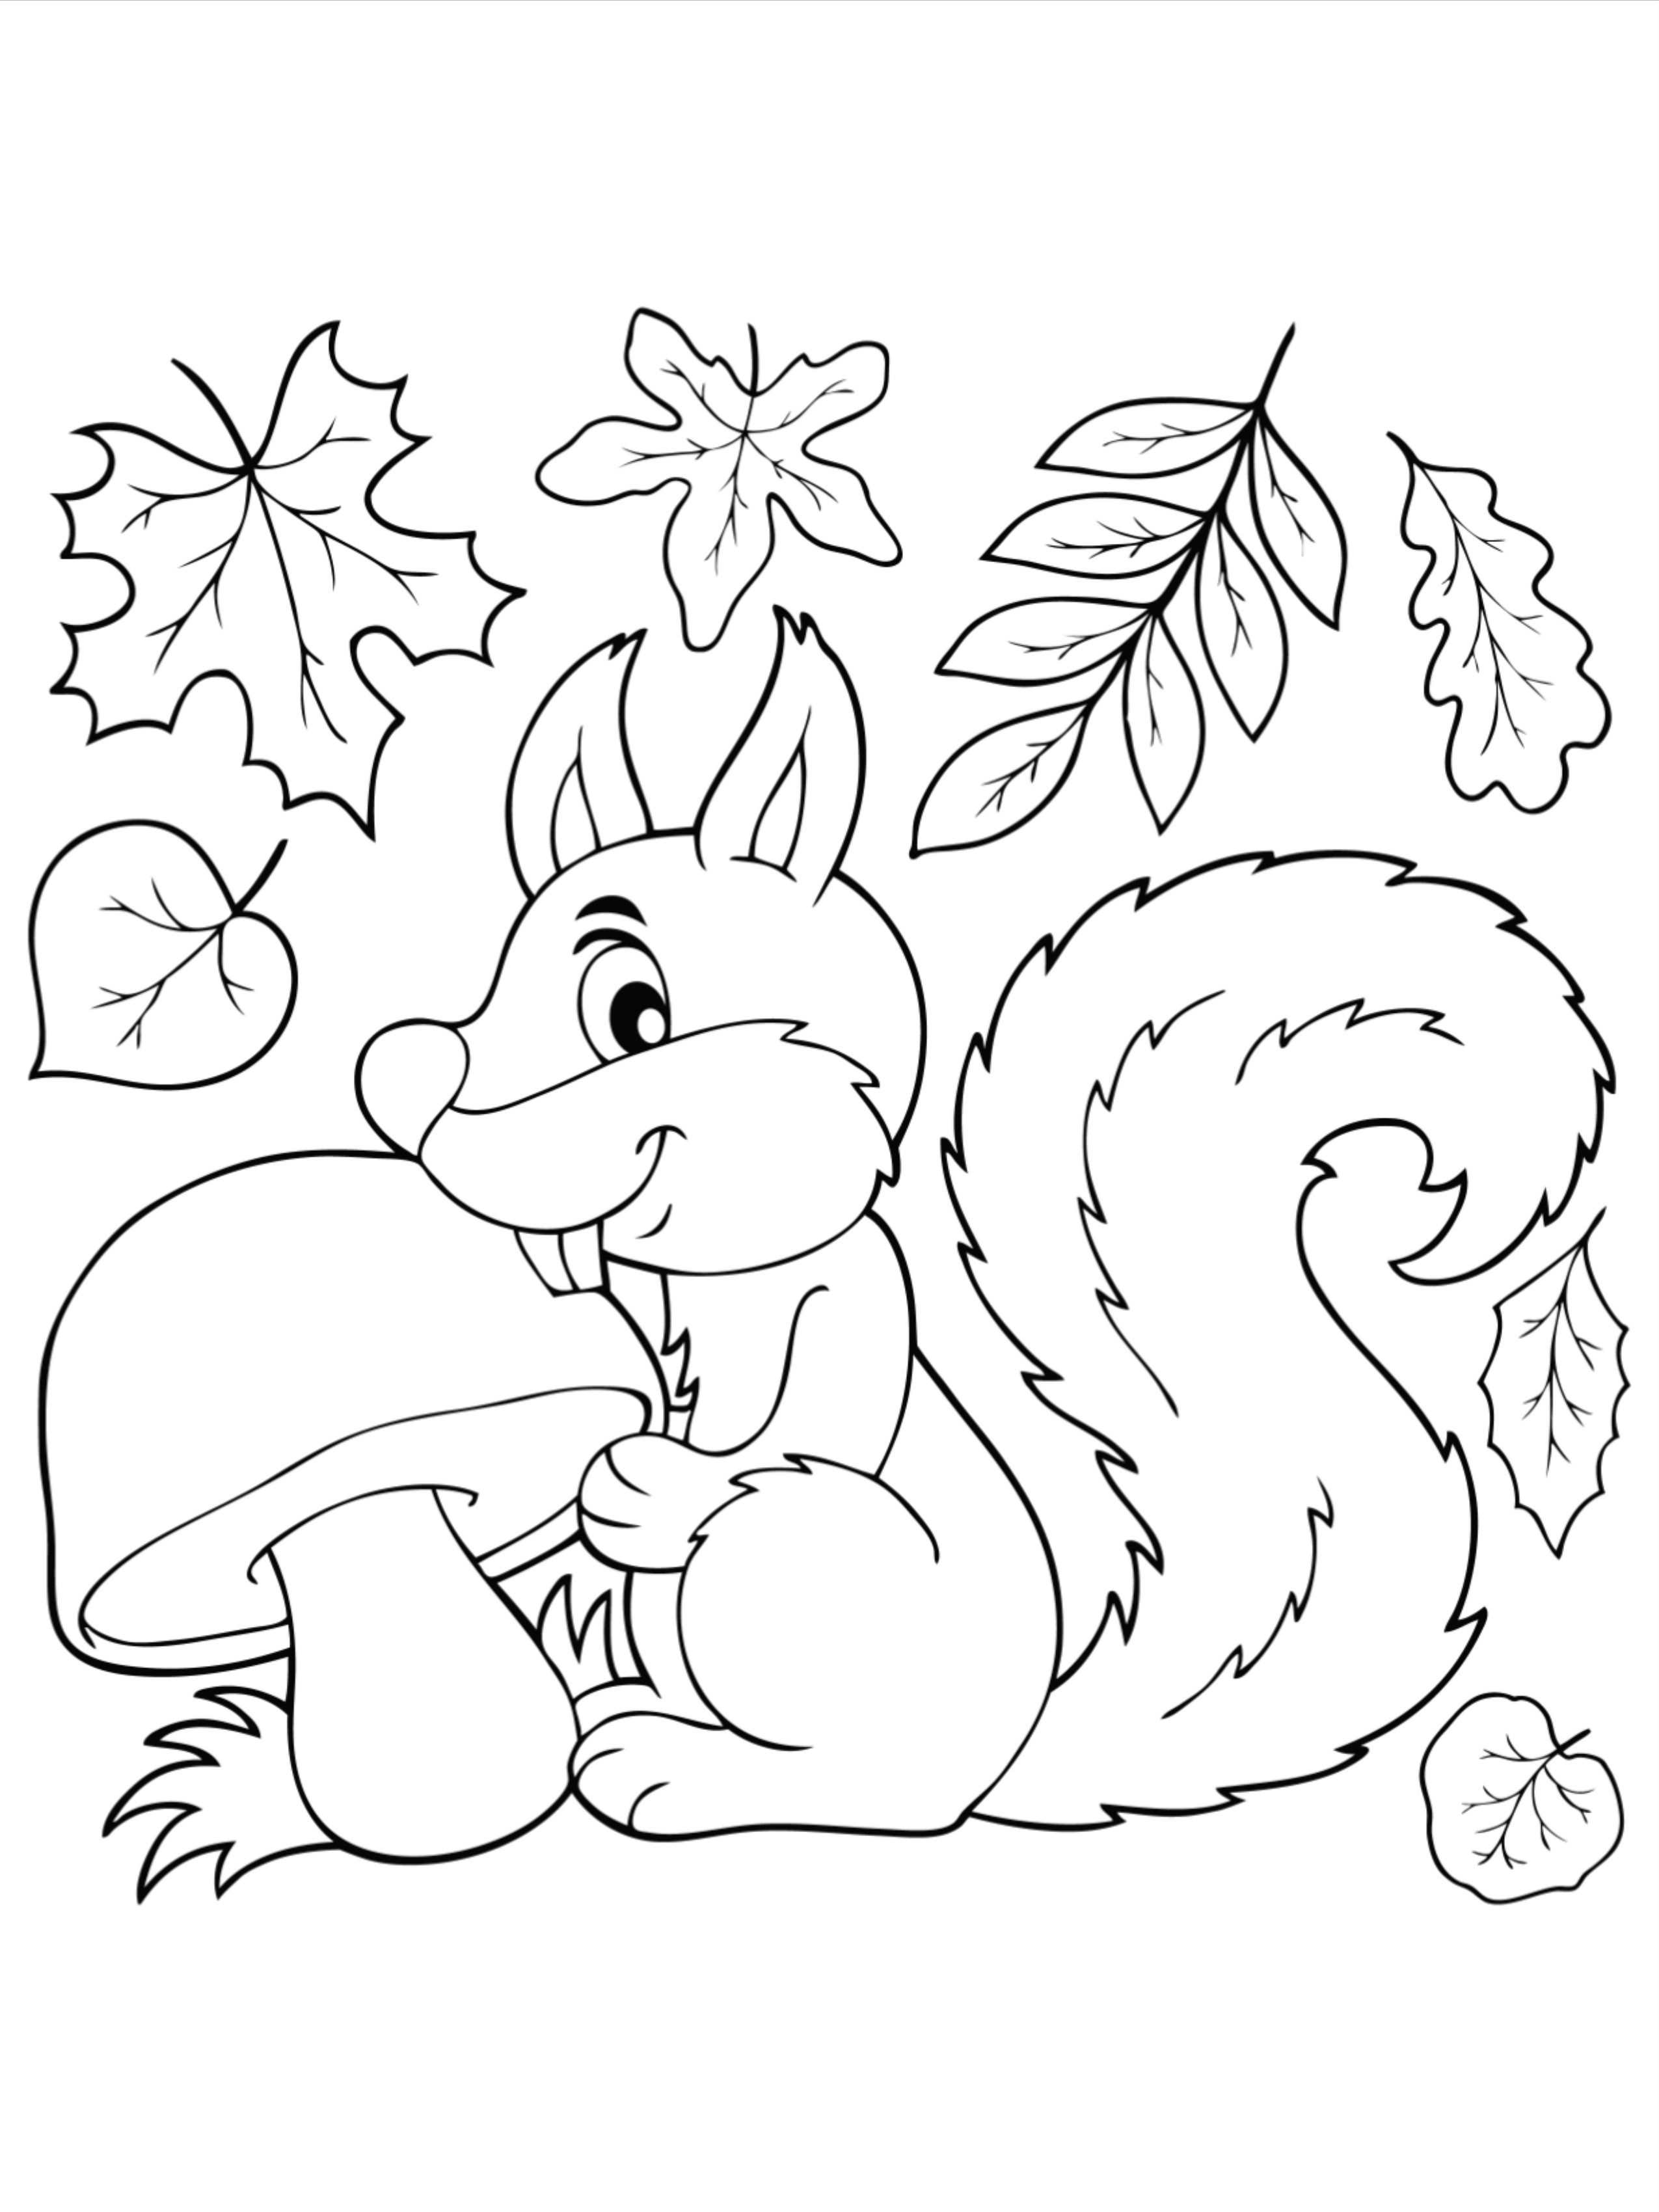 50 Fall Coloring Pages For Kids Fall Coloring Pages Fall Coloring Sheets Coloring Pages